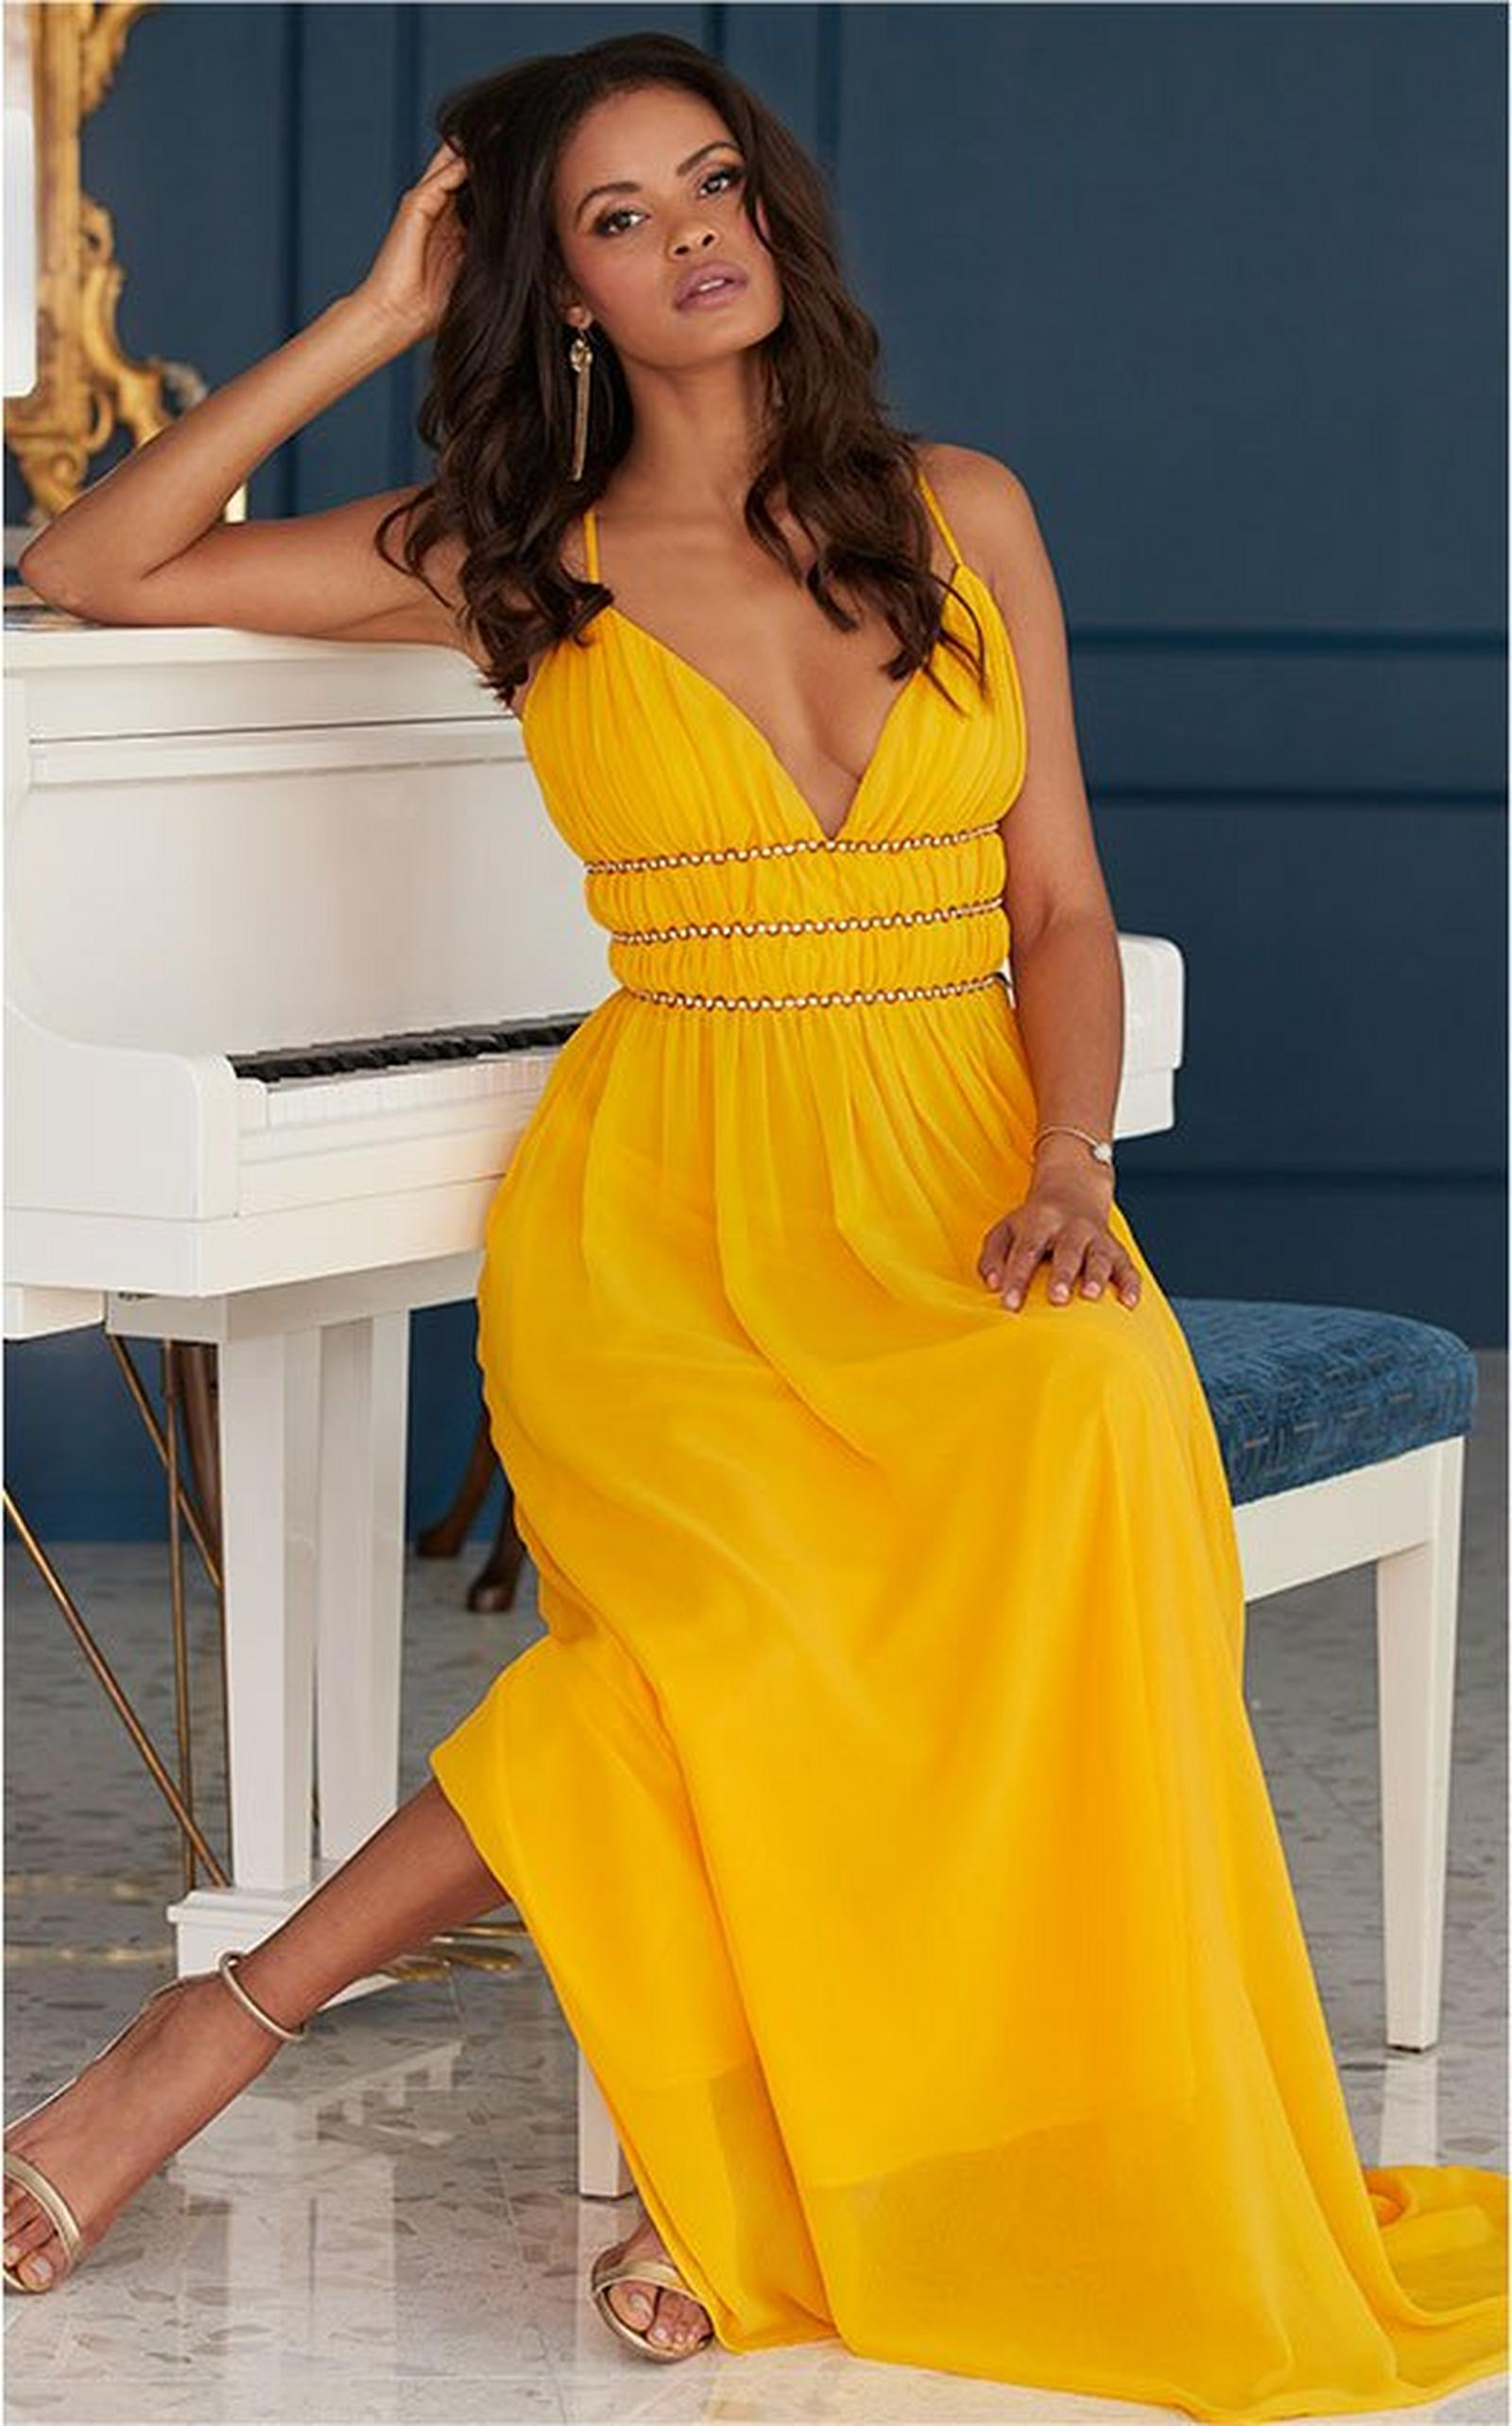 model wearing a yellow gold embellished maxi dress.